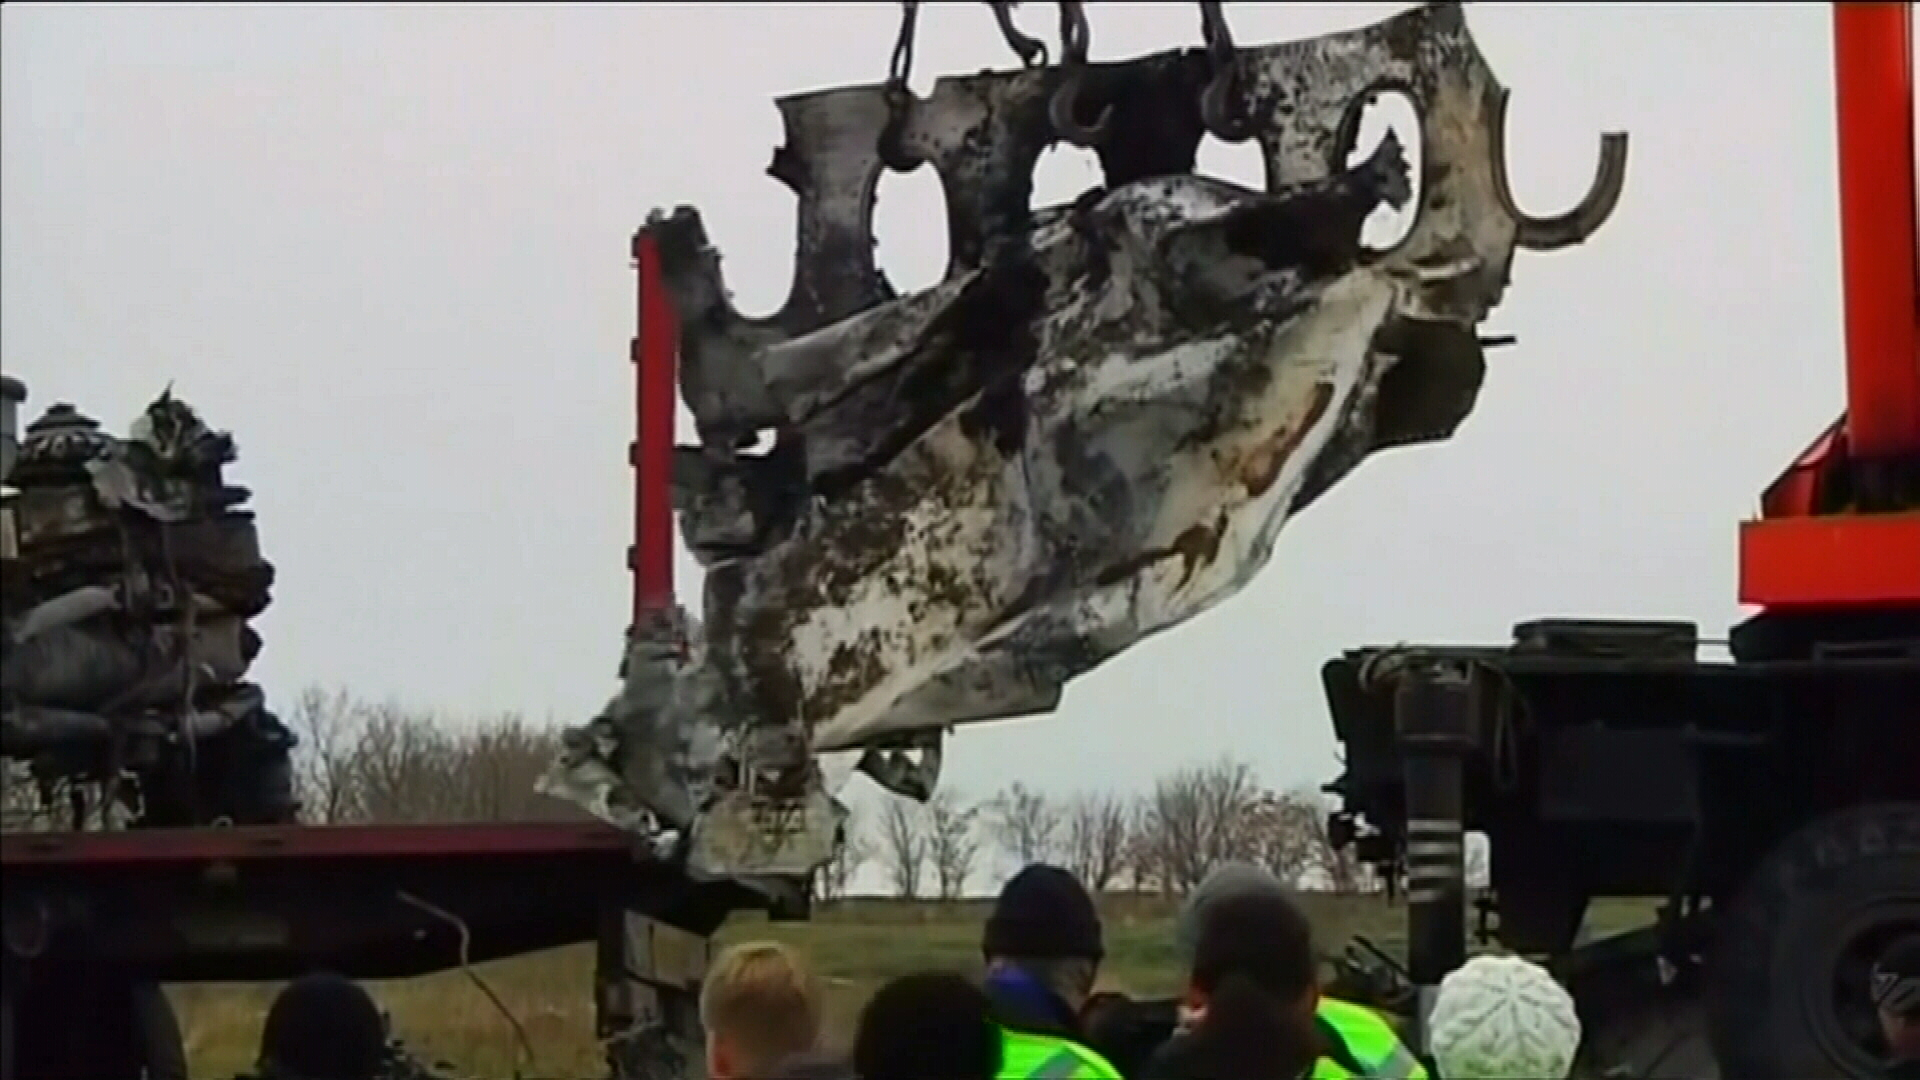 Report confirms Russian missile shot down MH17